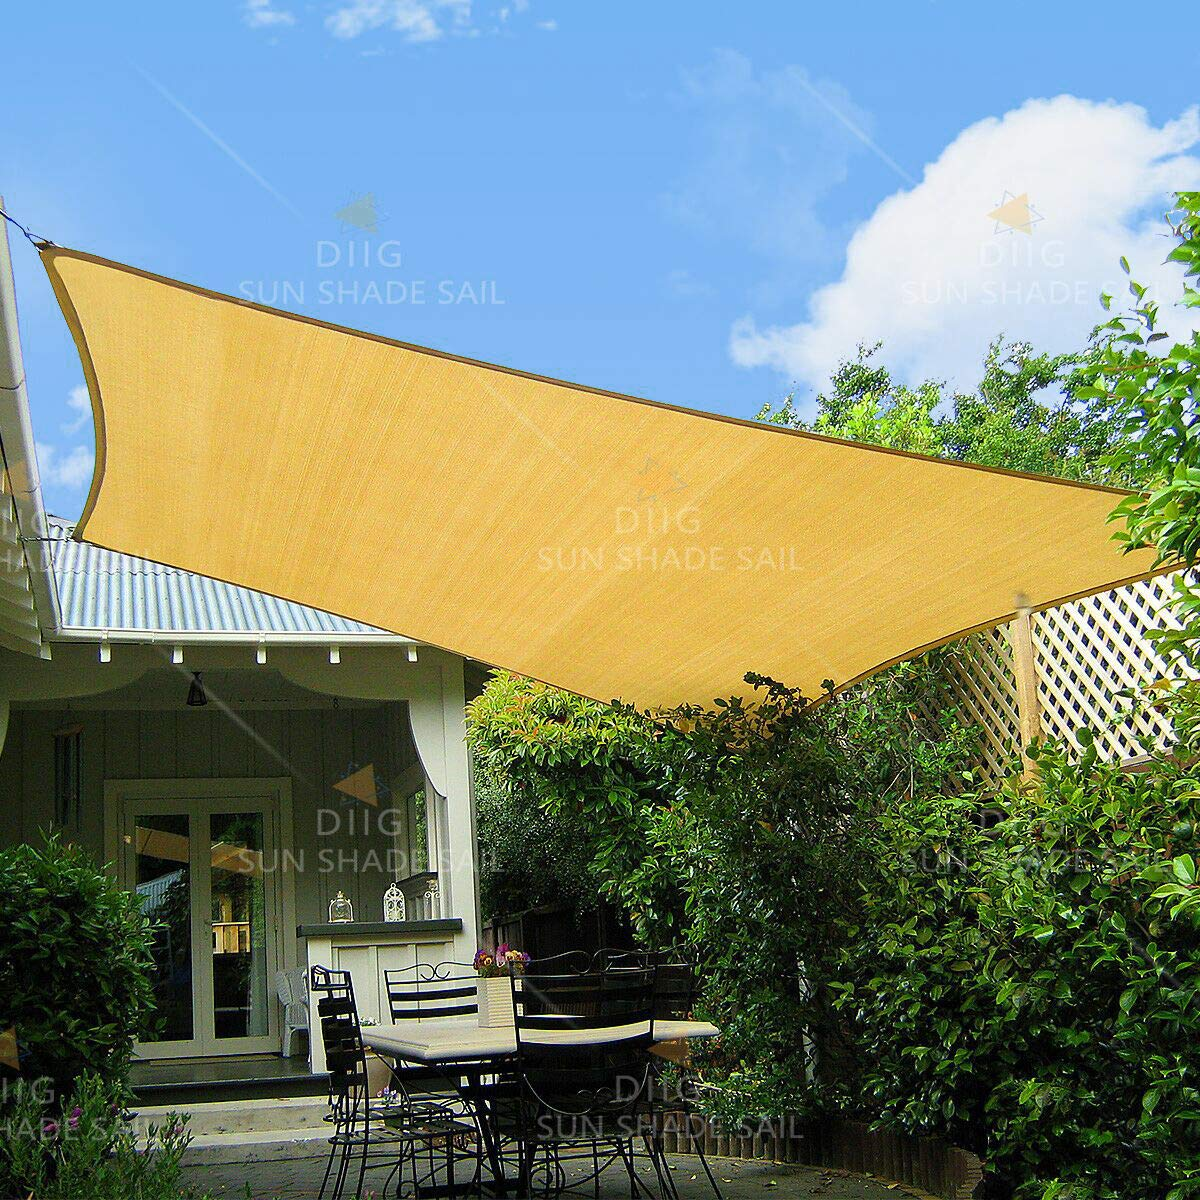 Windscreen4less 13 x 20 Sun Shade Sail UV Block Fabric Canopy in Turquoise Rectangle for Patio Garden Customized 3 Year Limited Warranty